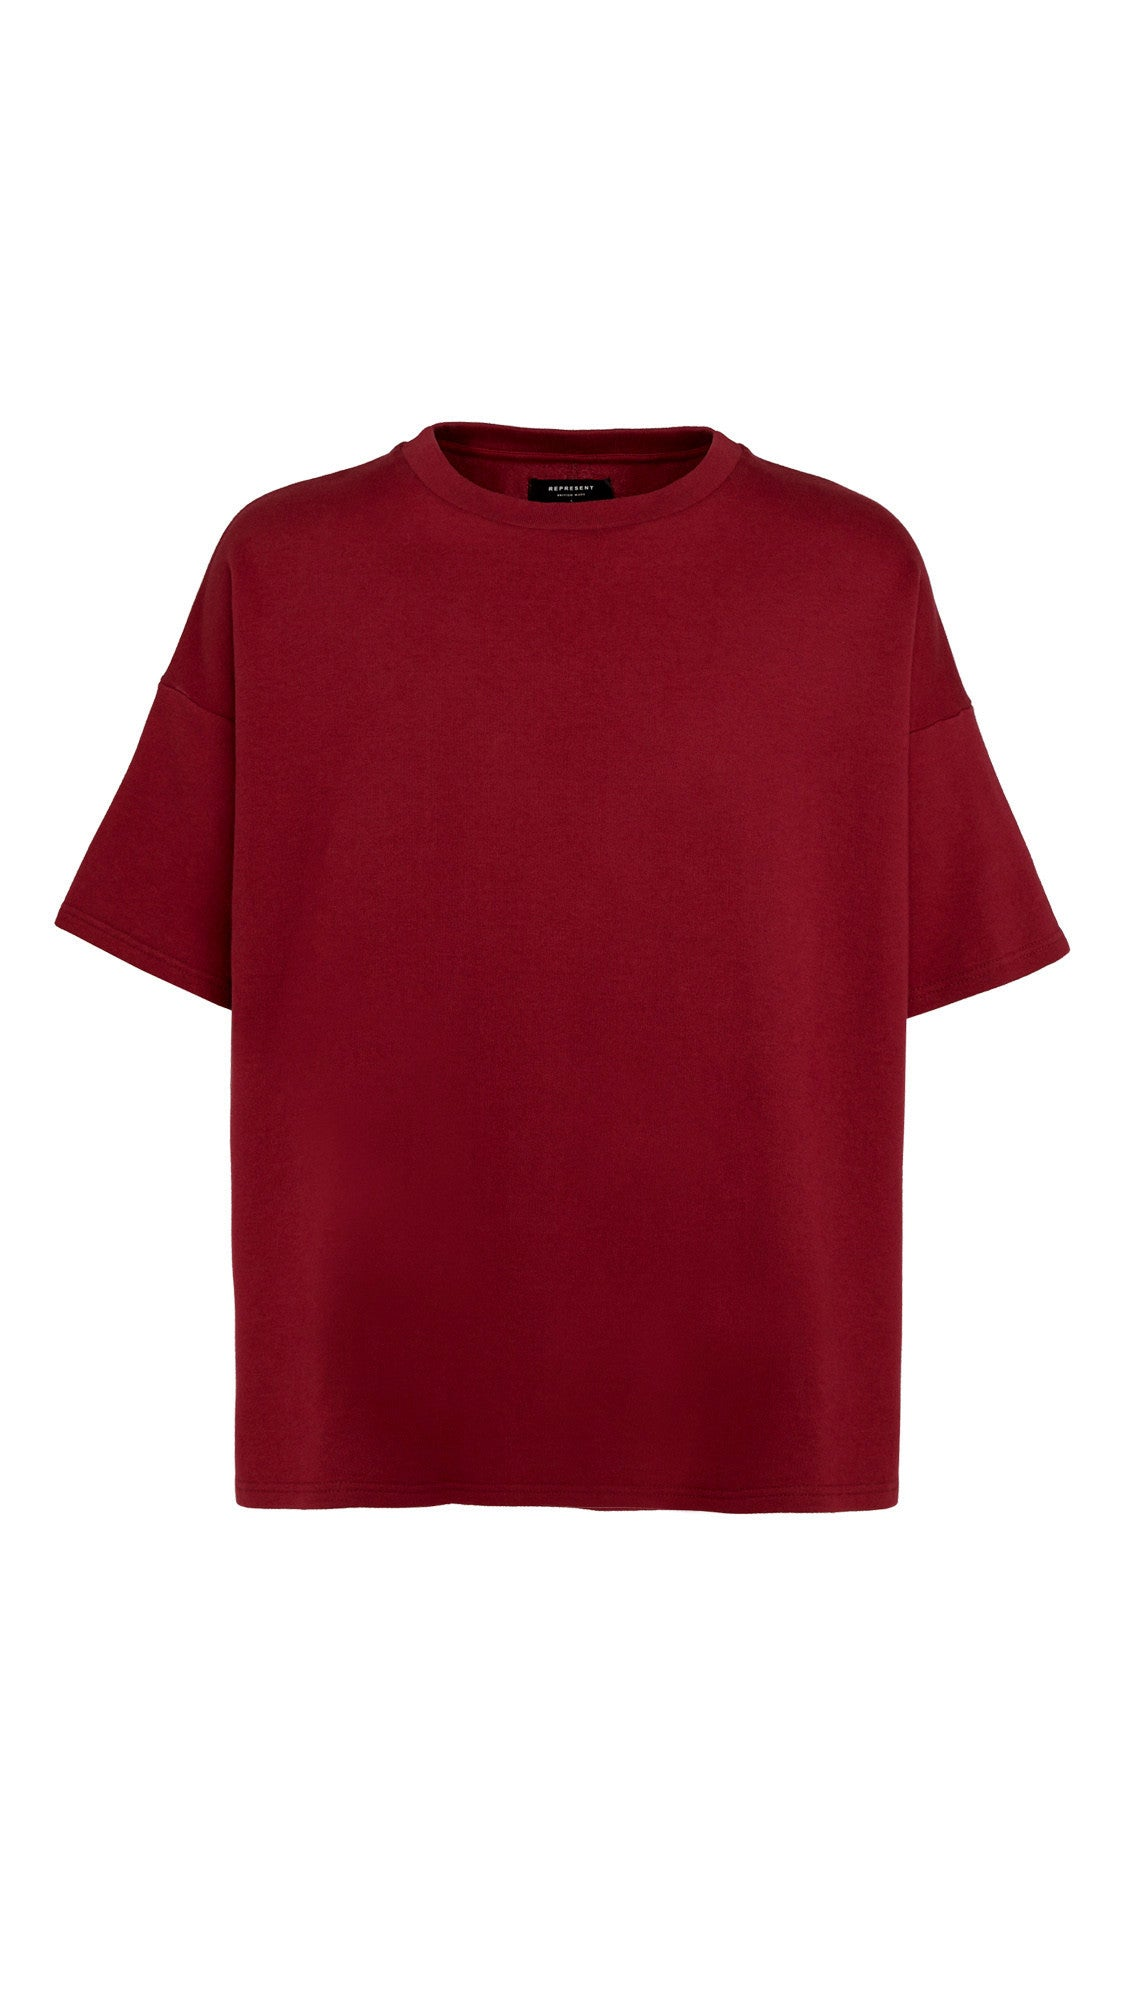 Heavy Over T-shirt - Ox Blood